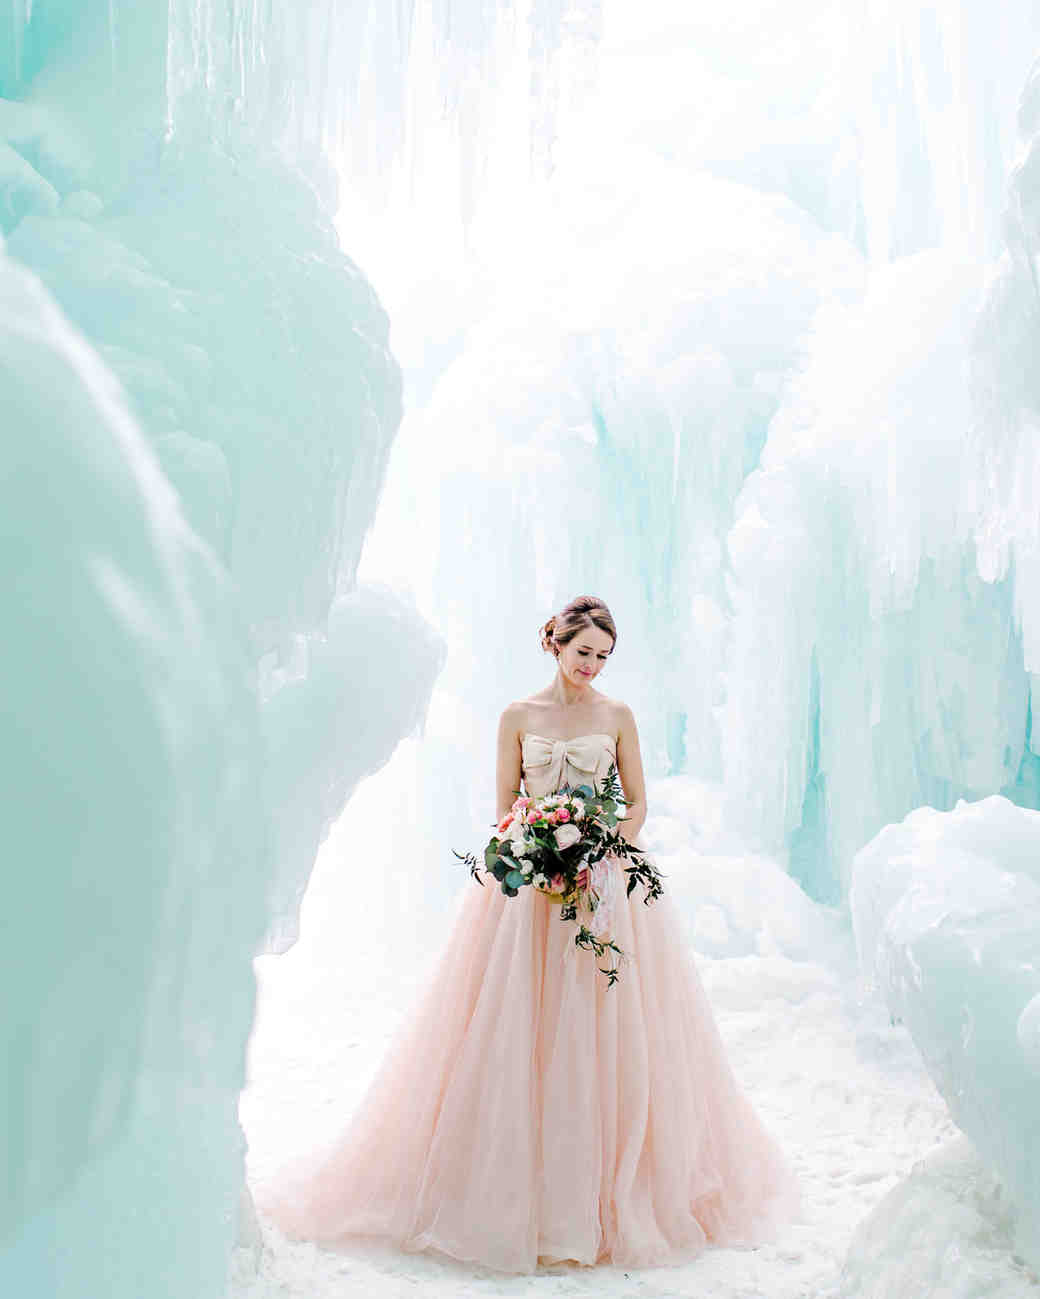 icy wedding photo